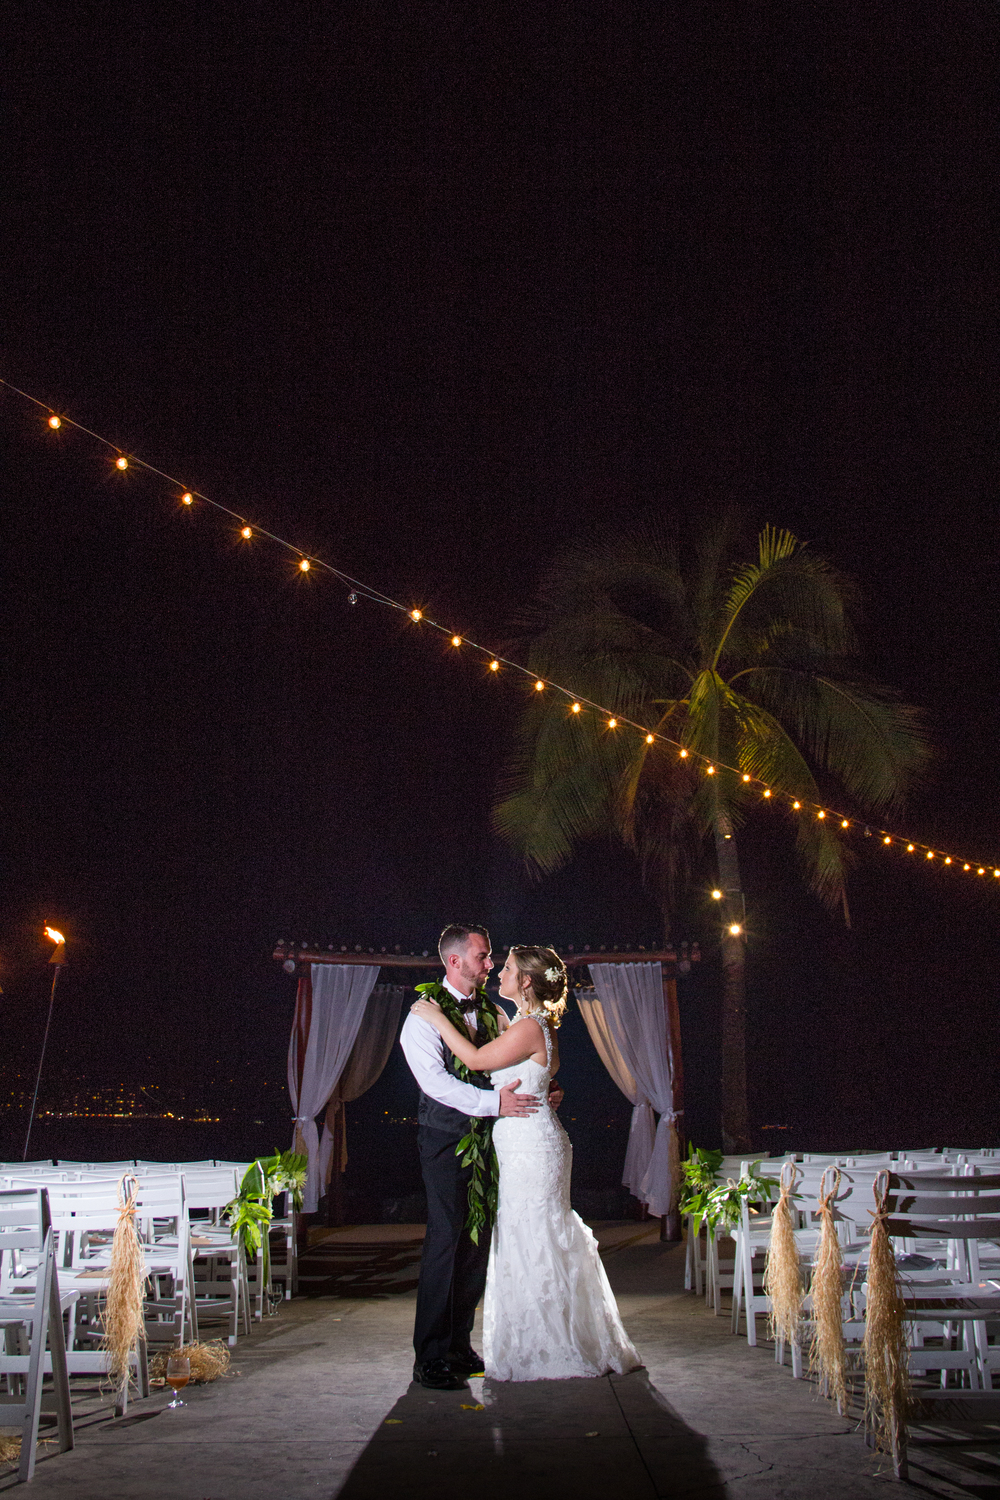 big island hawaii mauna lani resort wedding © kelilina photography 20160214190901-1.jpg